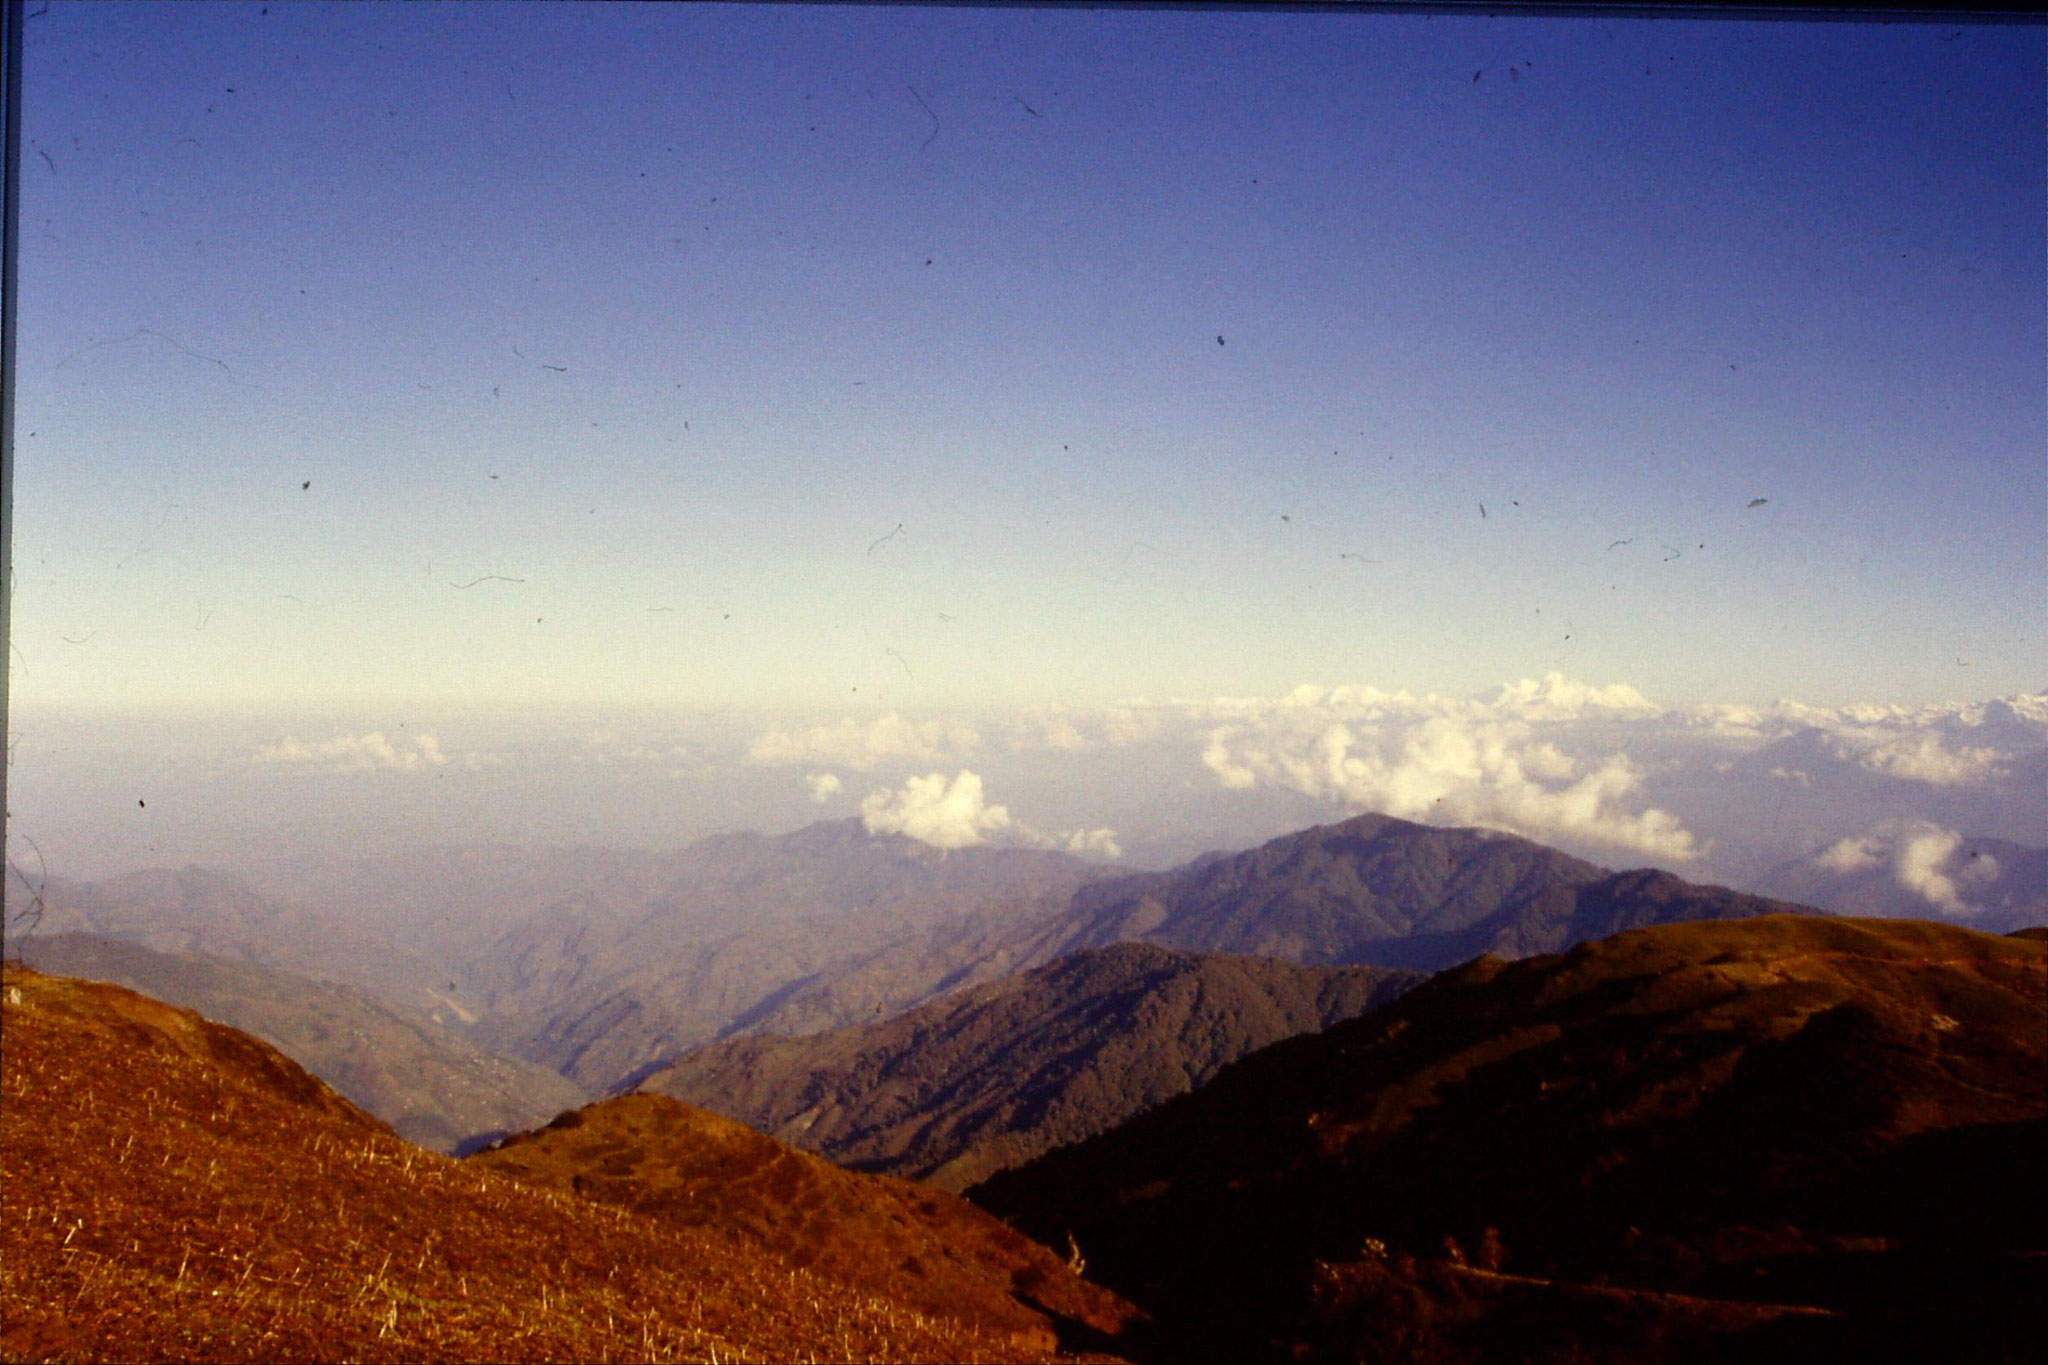 8/5/1990: 23: panorama - Everest on right